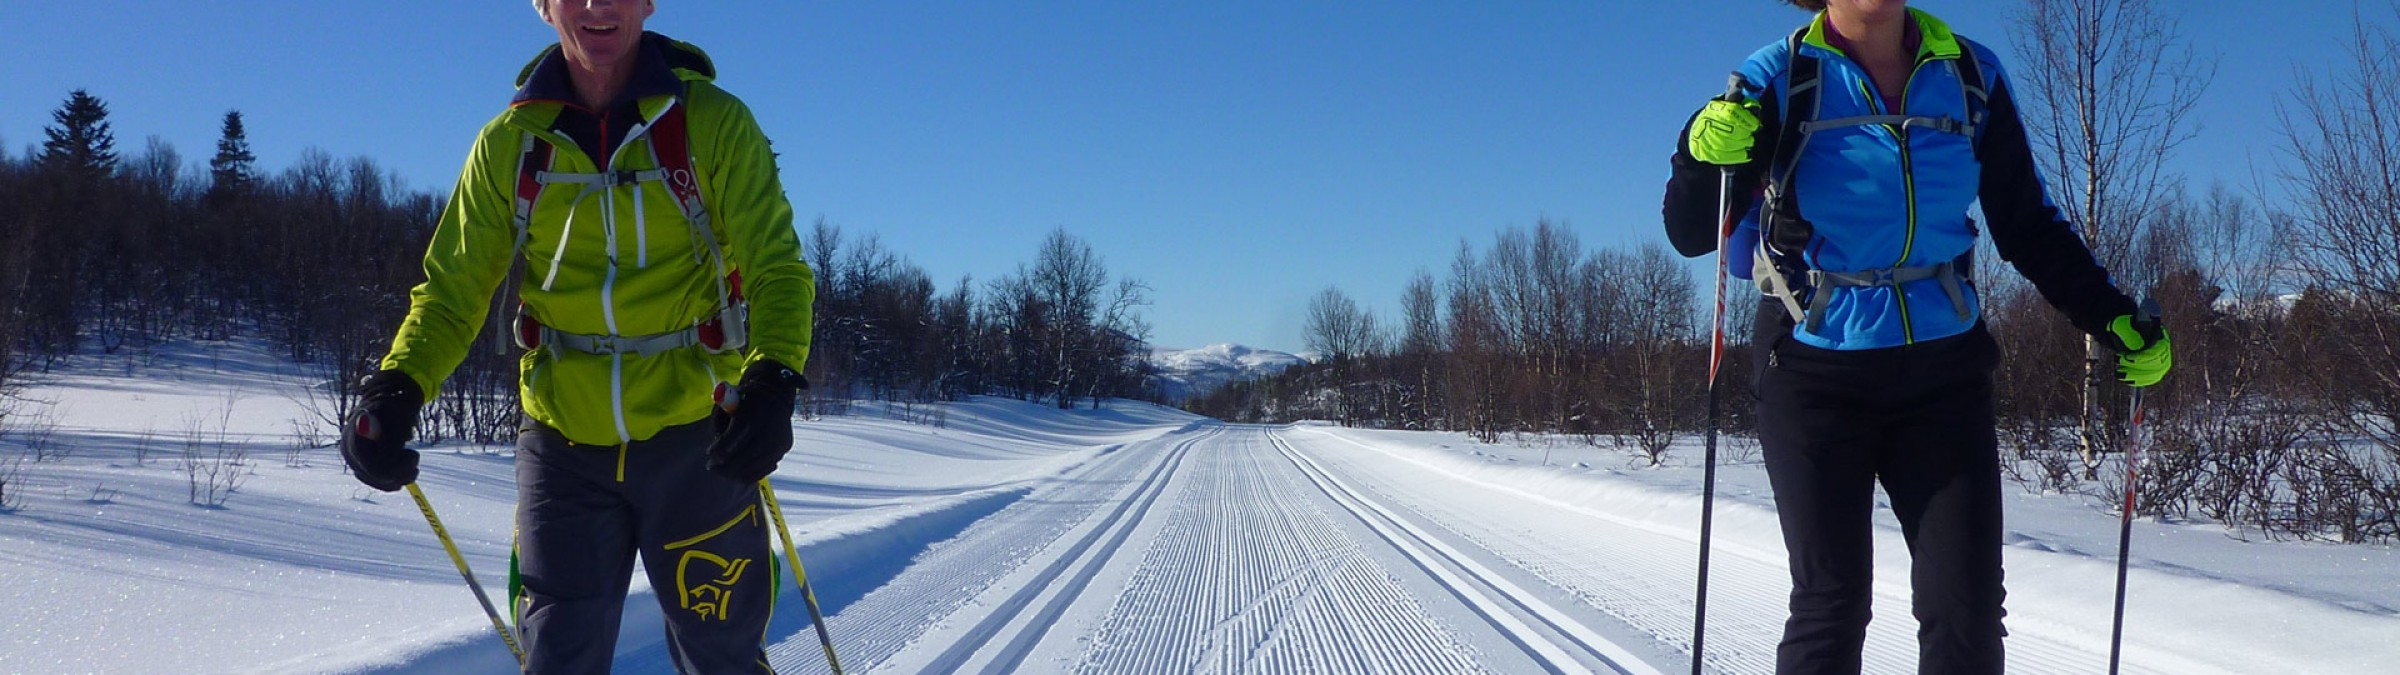 Cross country skiing homepage slideshow v3